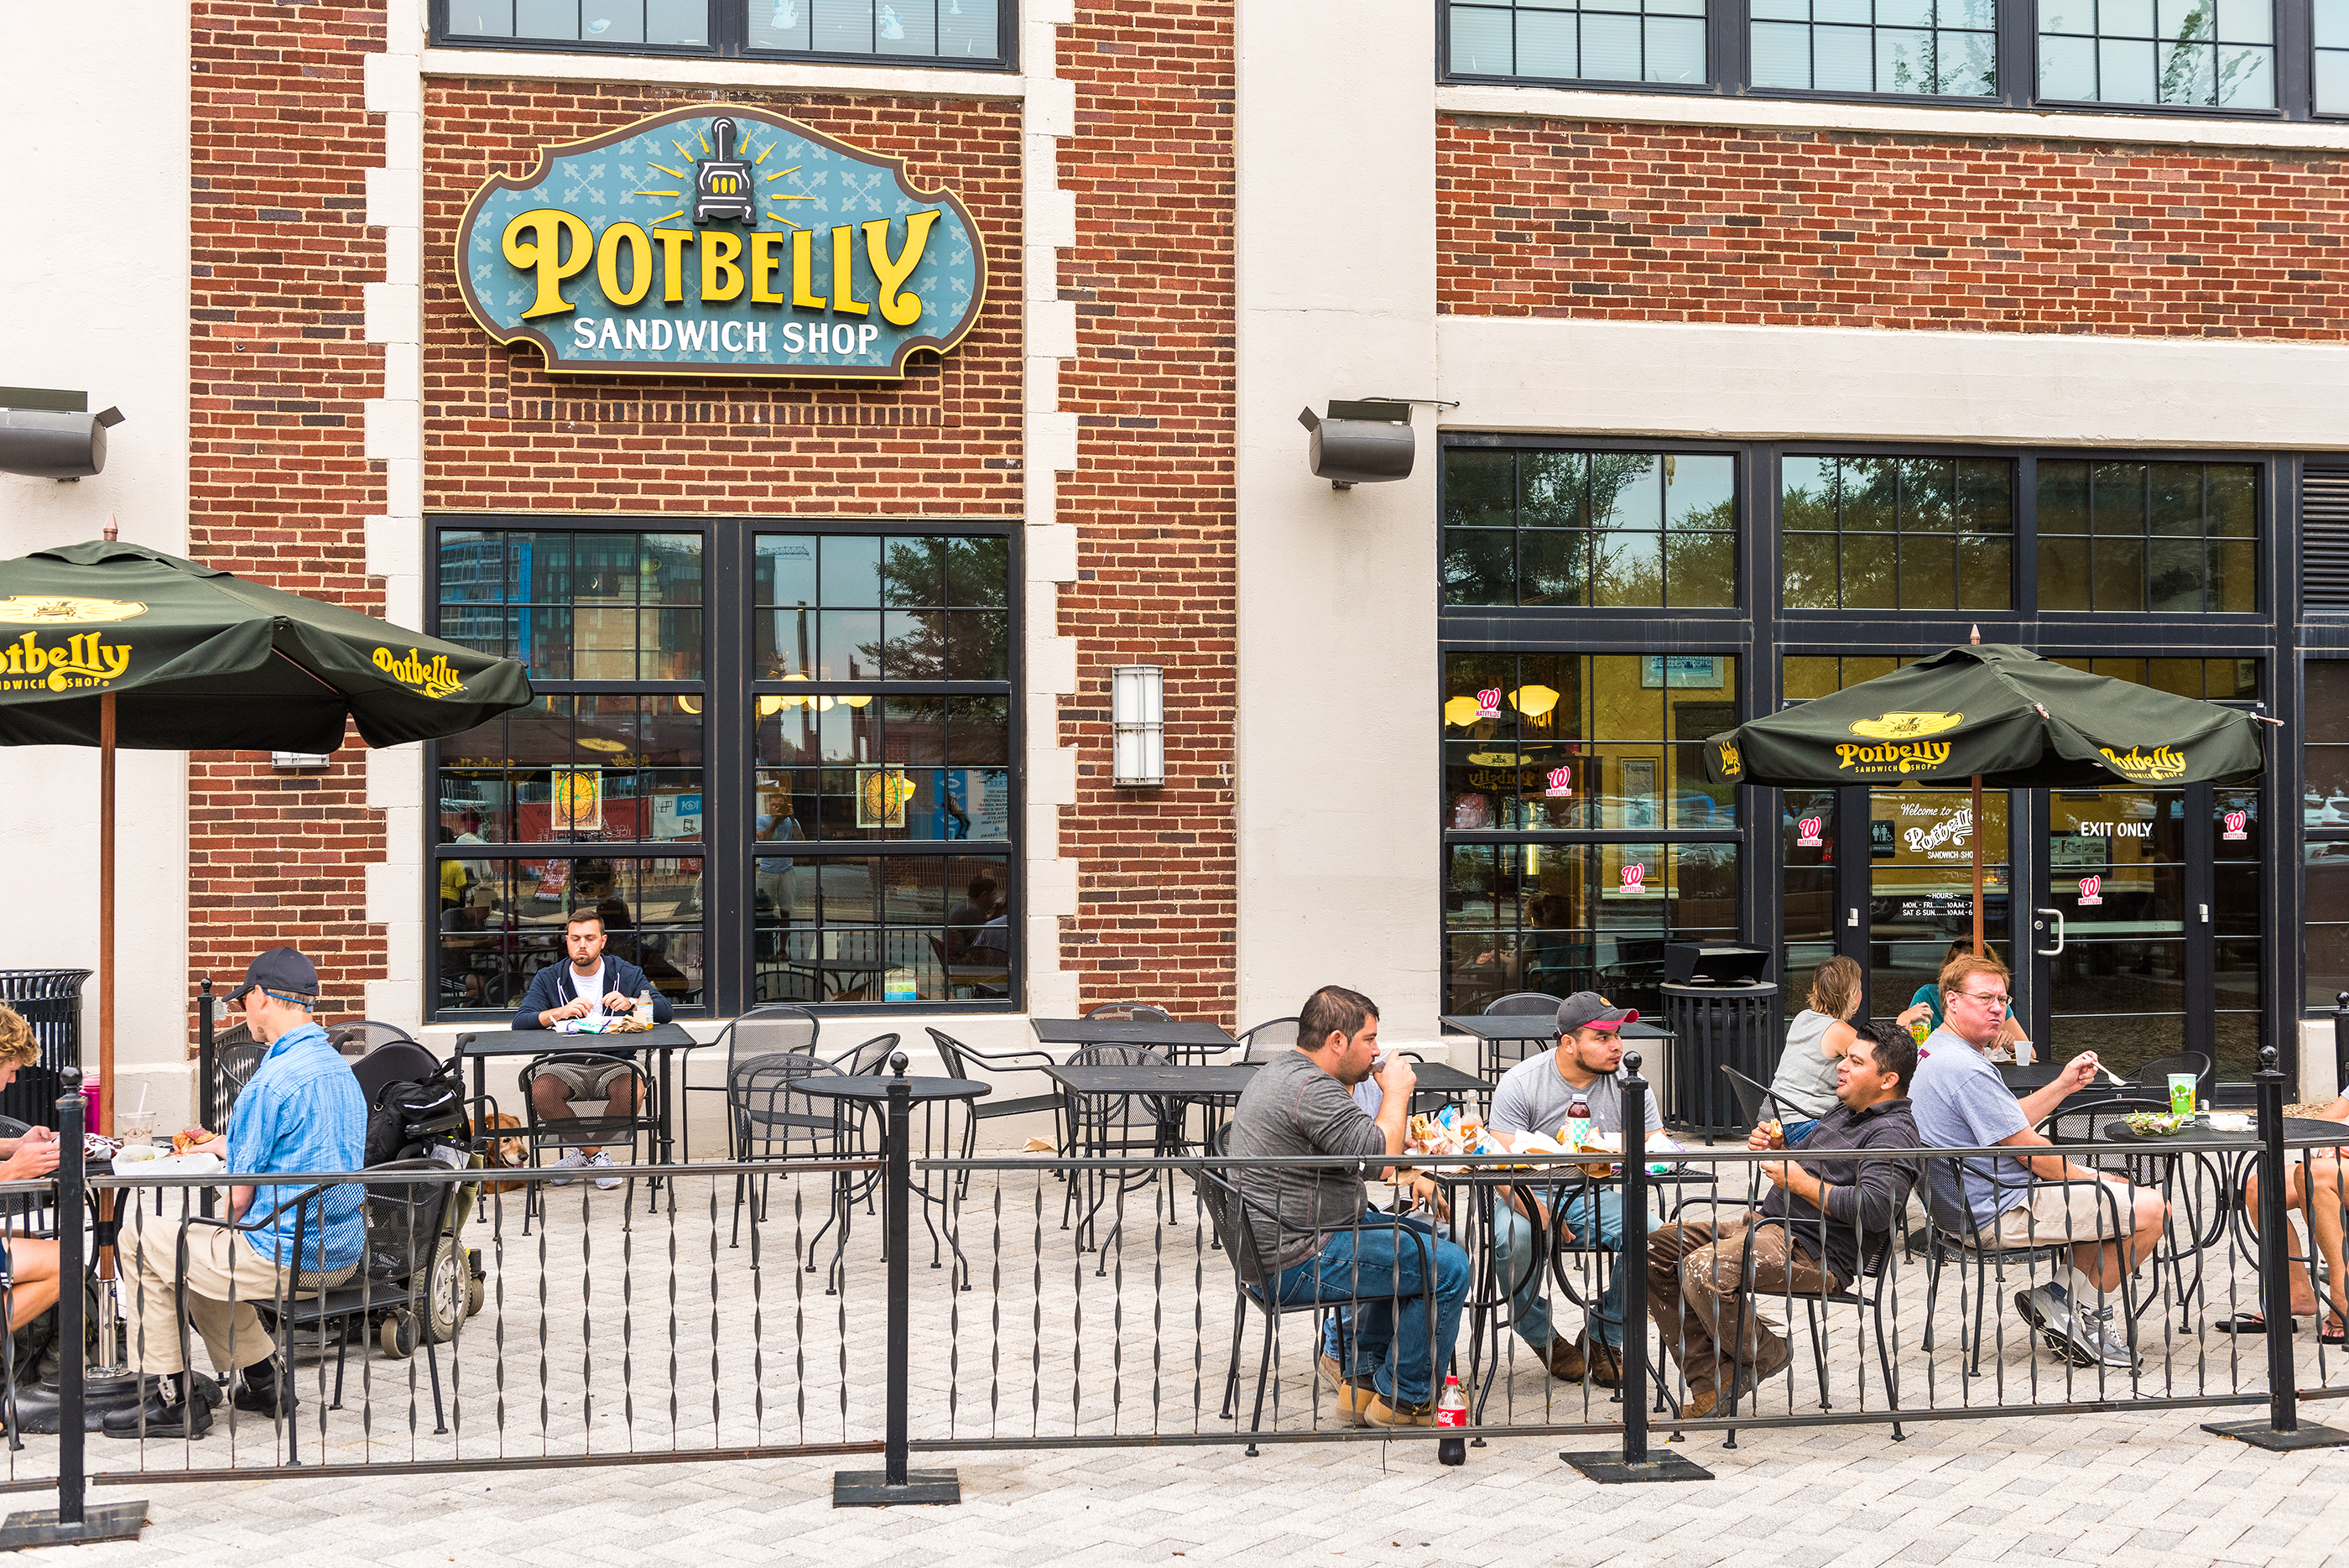 180430-fast-casual-restaurants-potbelly